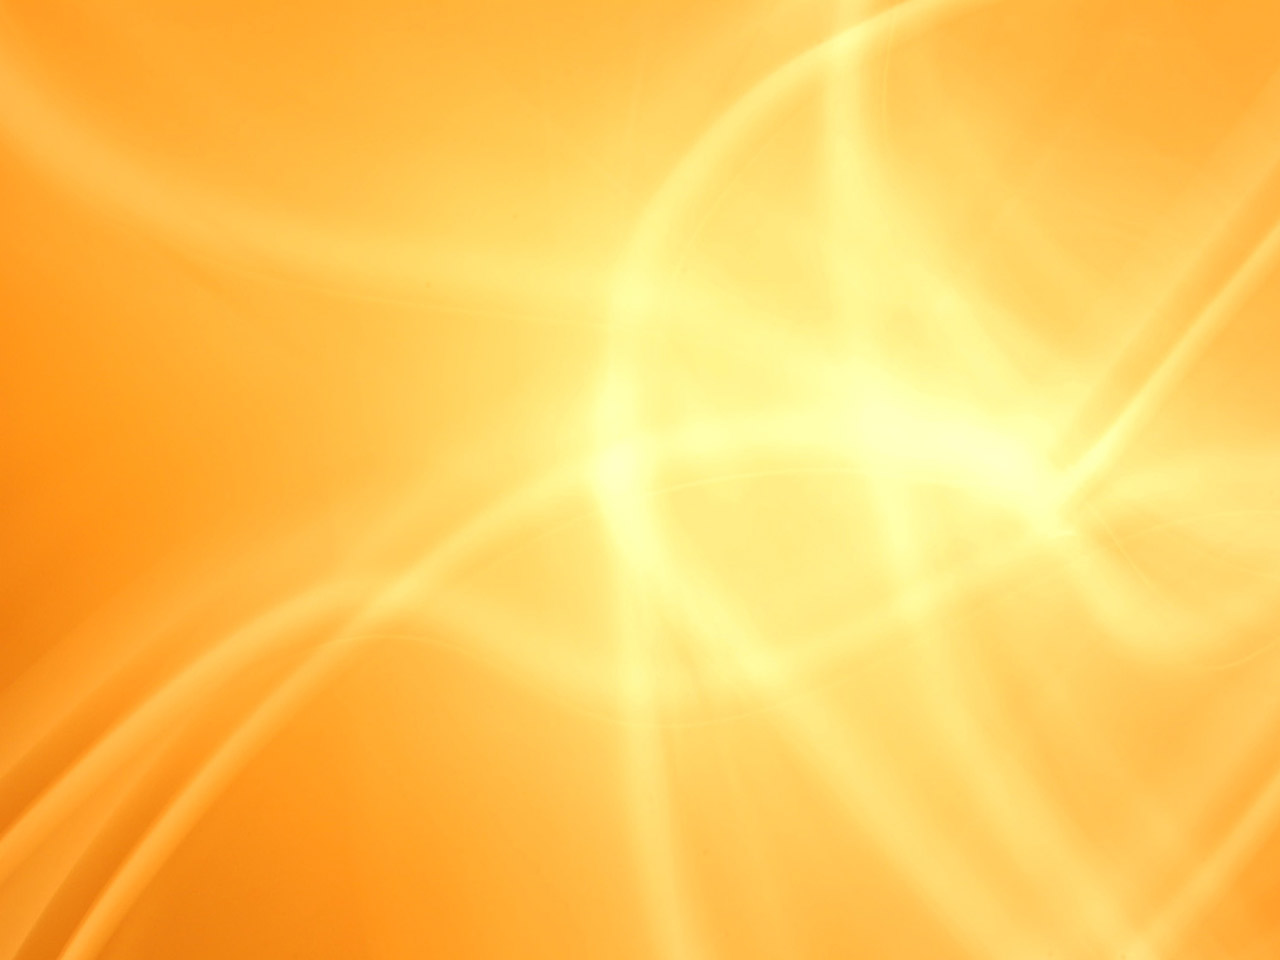 abstract_background_orange